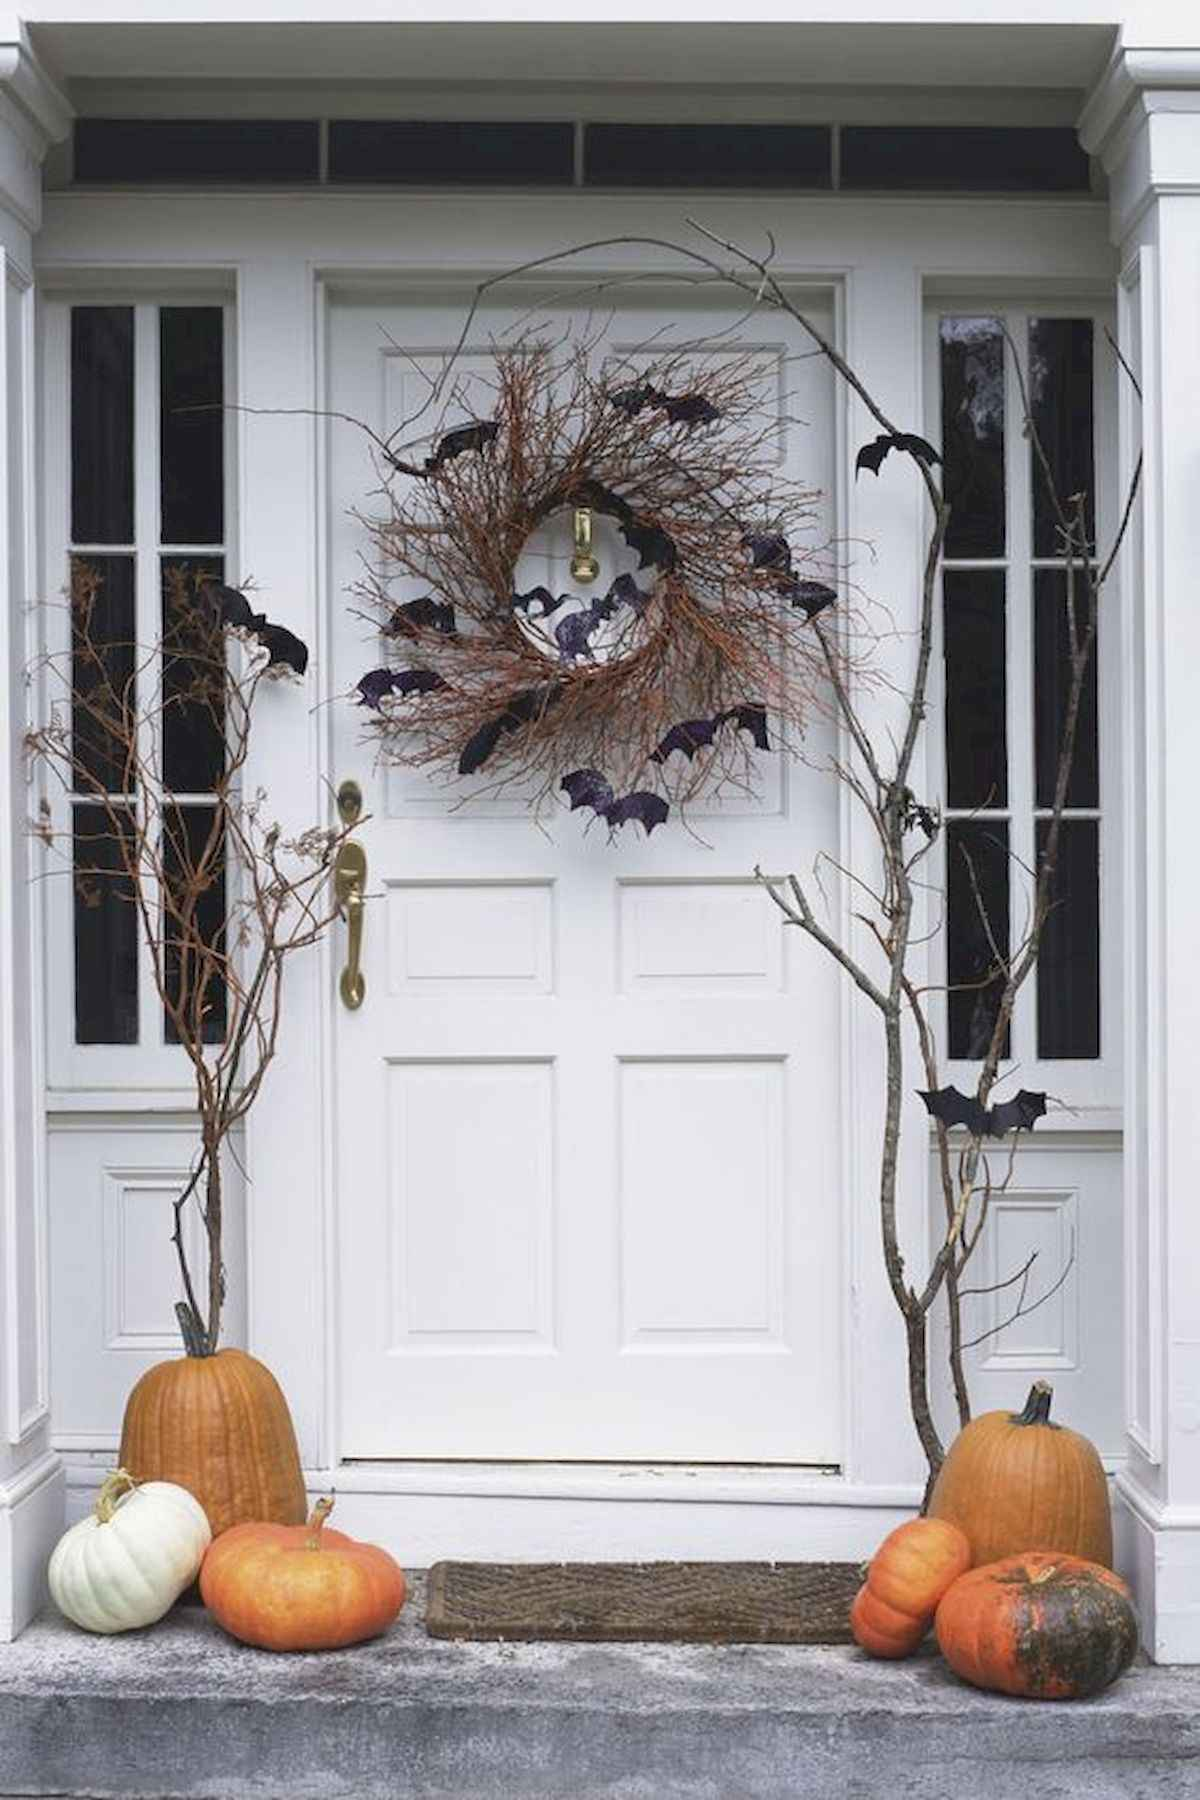 22 Chilling and Creative Halloween Porch Decorations 21